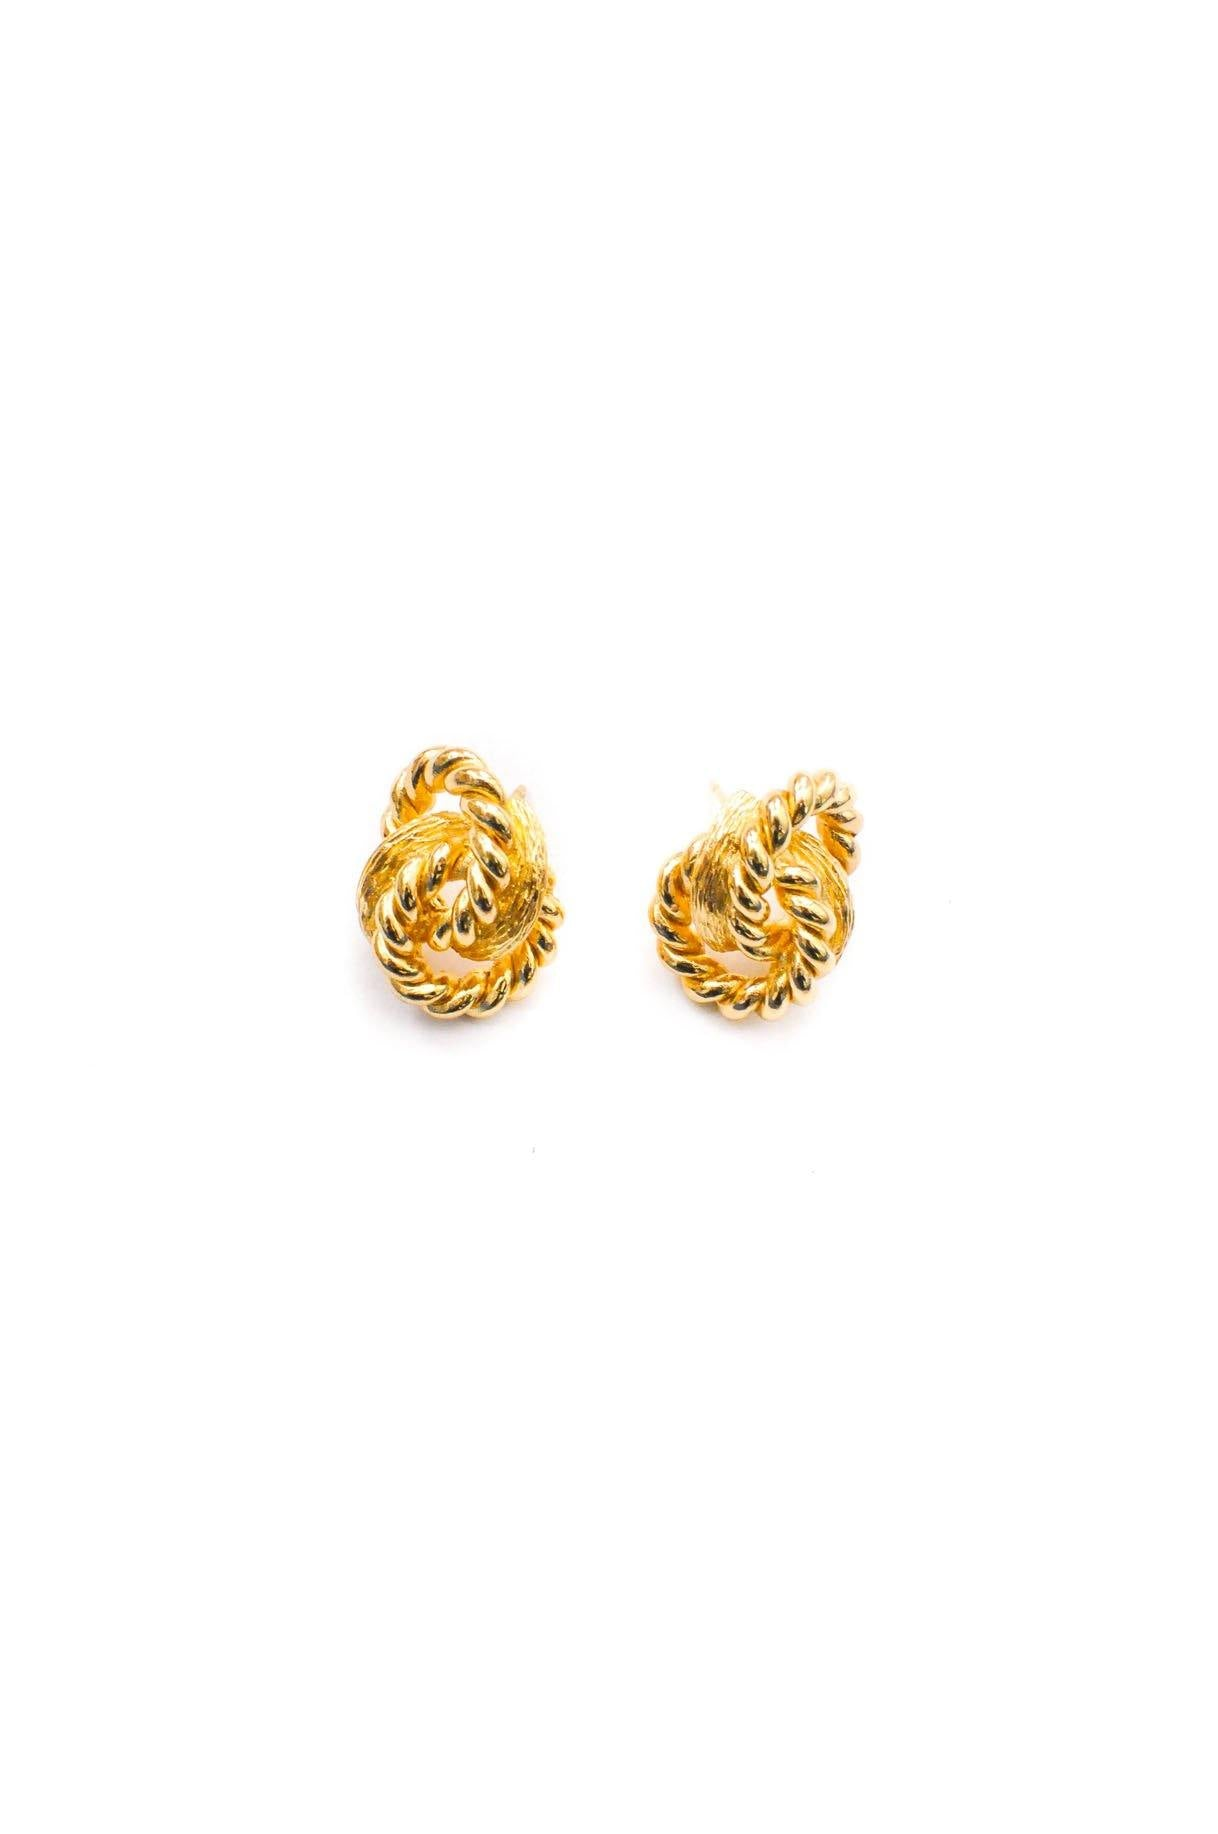 Vintage Christian Dior Knot Pierced Earrings from Sweet and Spark.